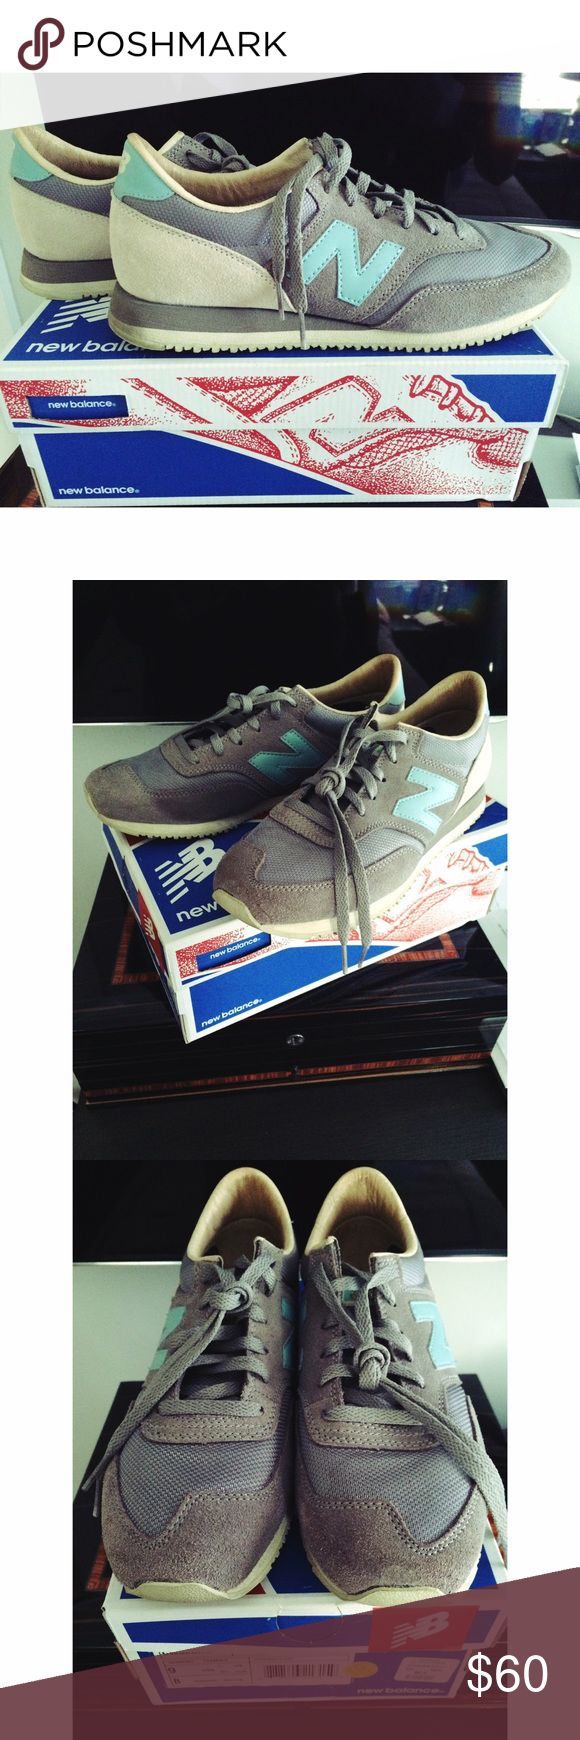 New Balance Classic Sneakers Grey and light blue new balance sneakers great for this Fall! Barely worn, extra laces included in box. New Balance Shoes Sneakers